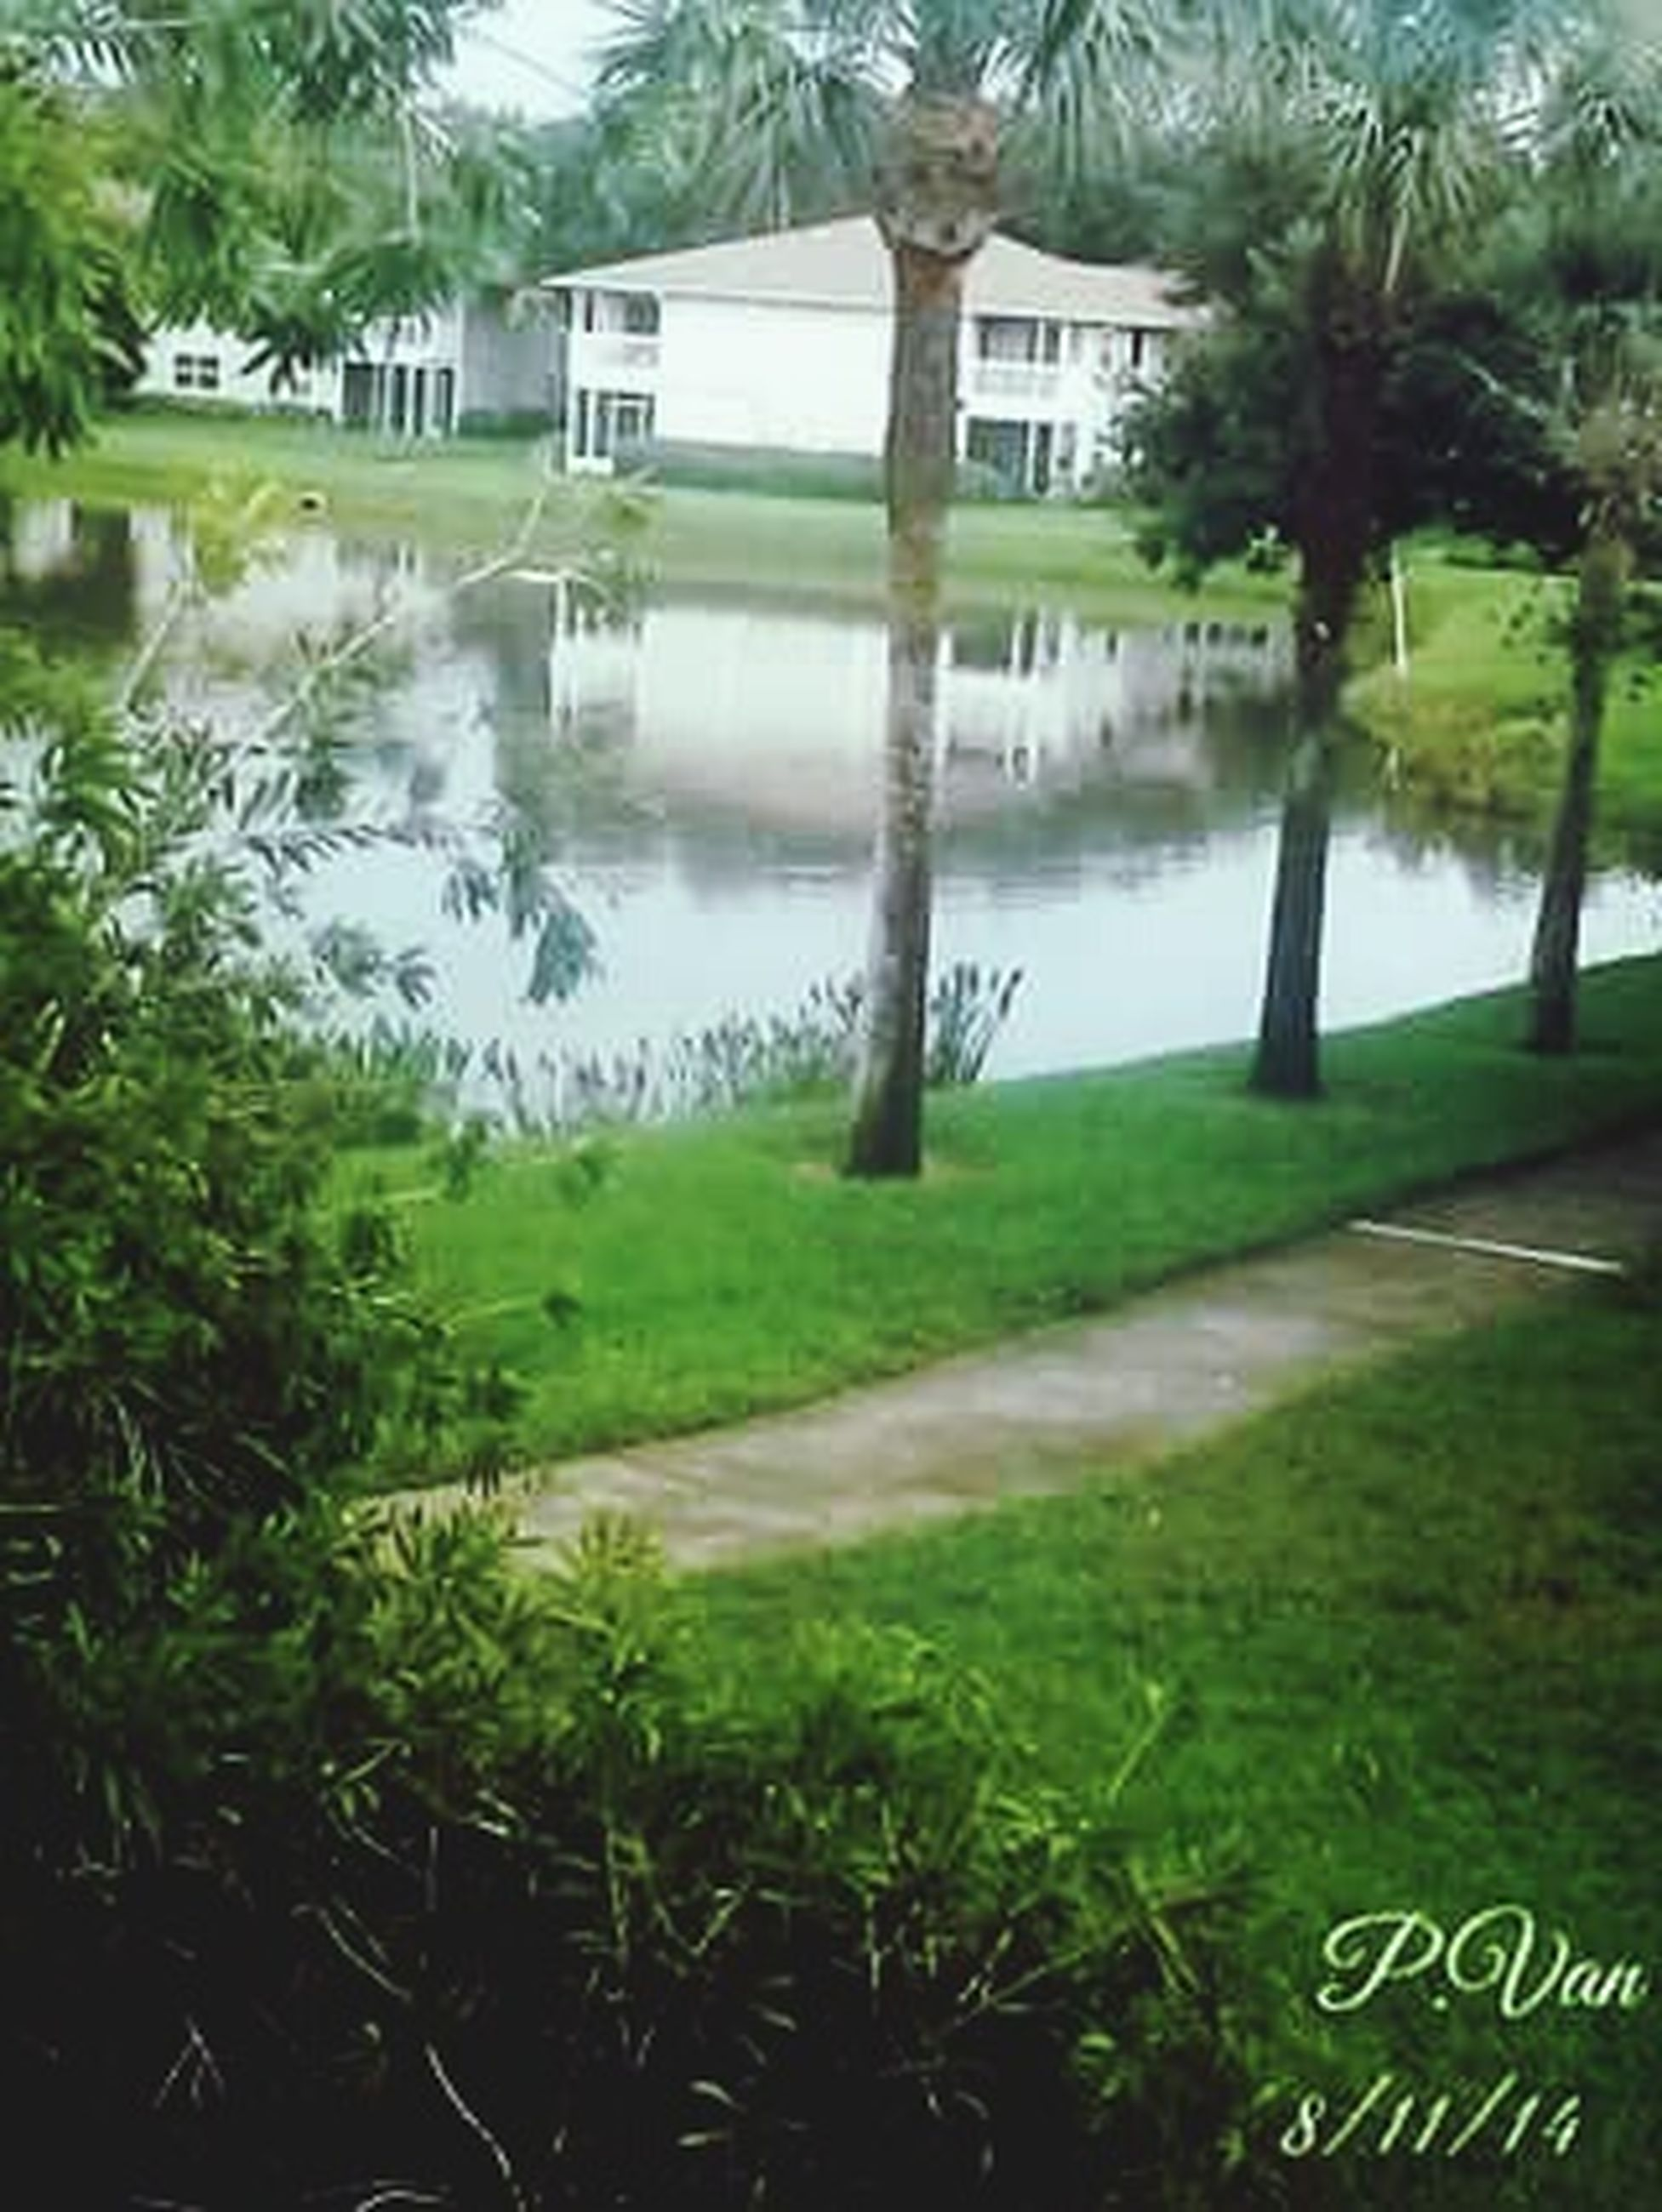 water, grass, tree, lake, river, built structure, green color, growth, plant, nature, reflection, architecture, tranquility, day, park - man made space, pond, outdoors, building exterior, no people, beauty in nature